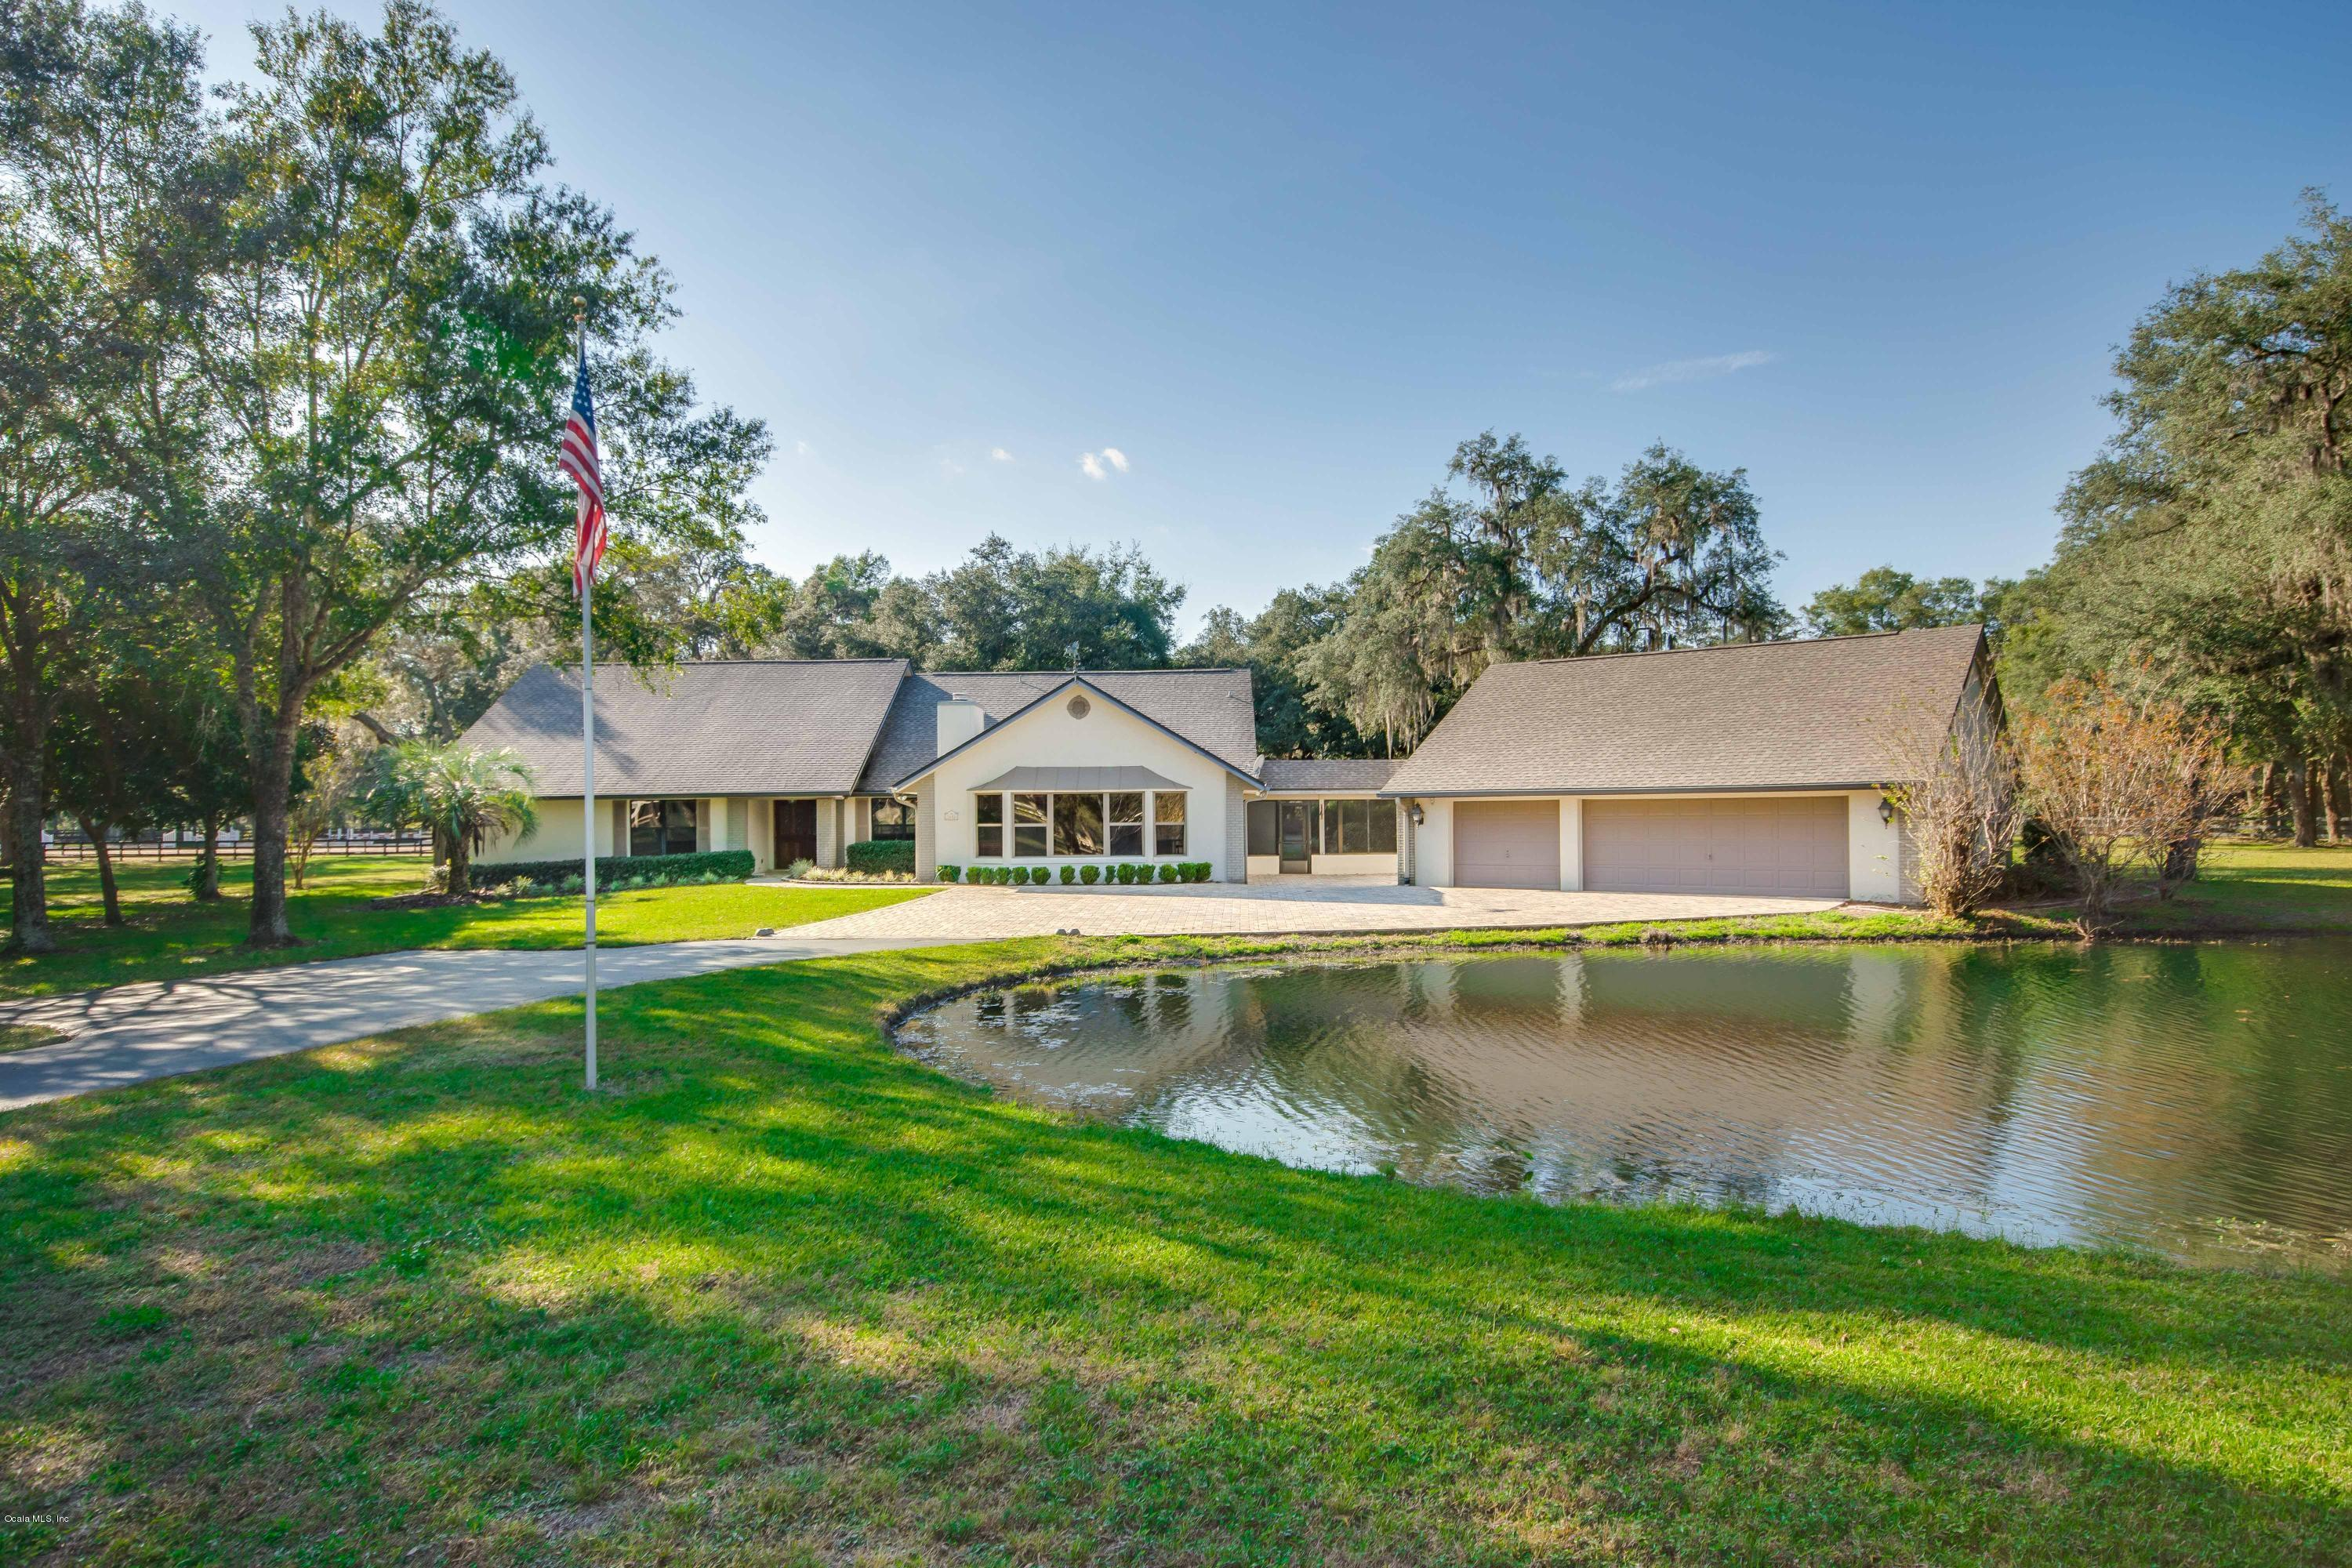 3686 NW 130TH AVENUE, OCALA, FL 34482